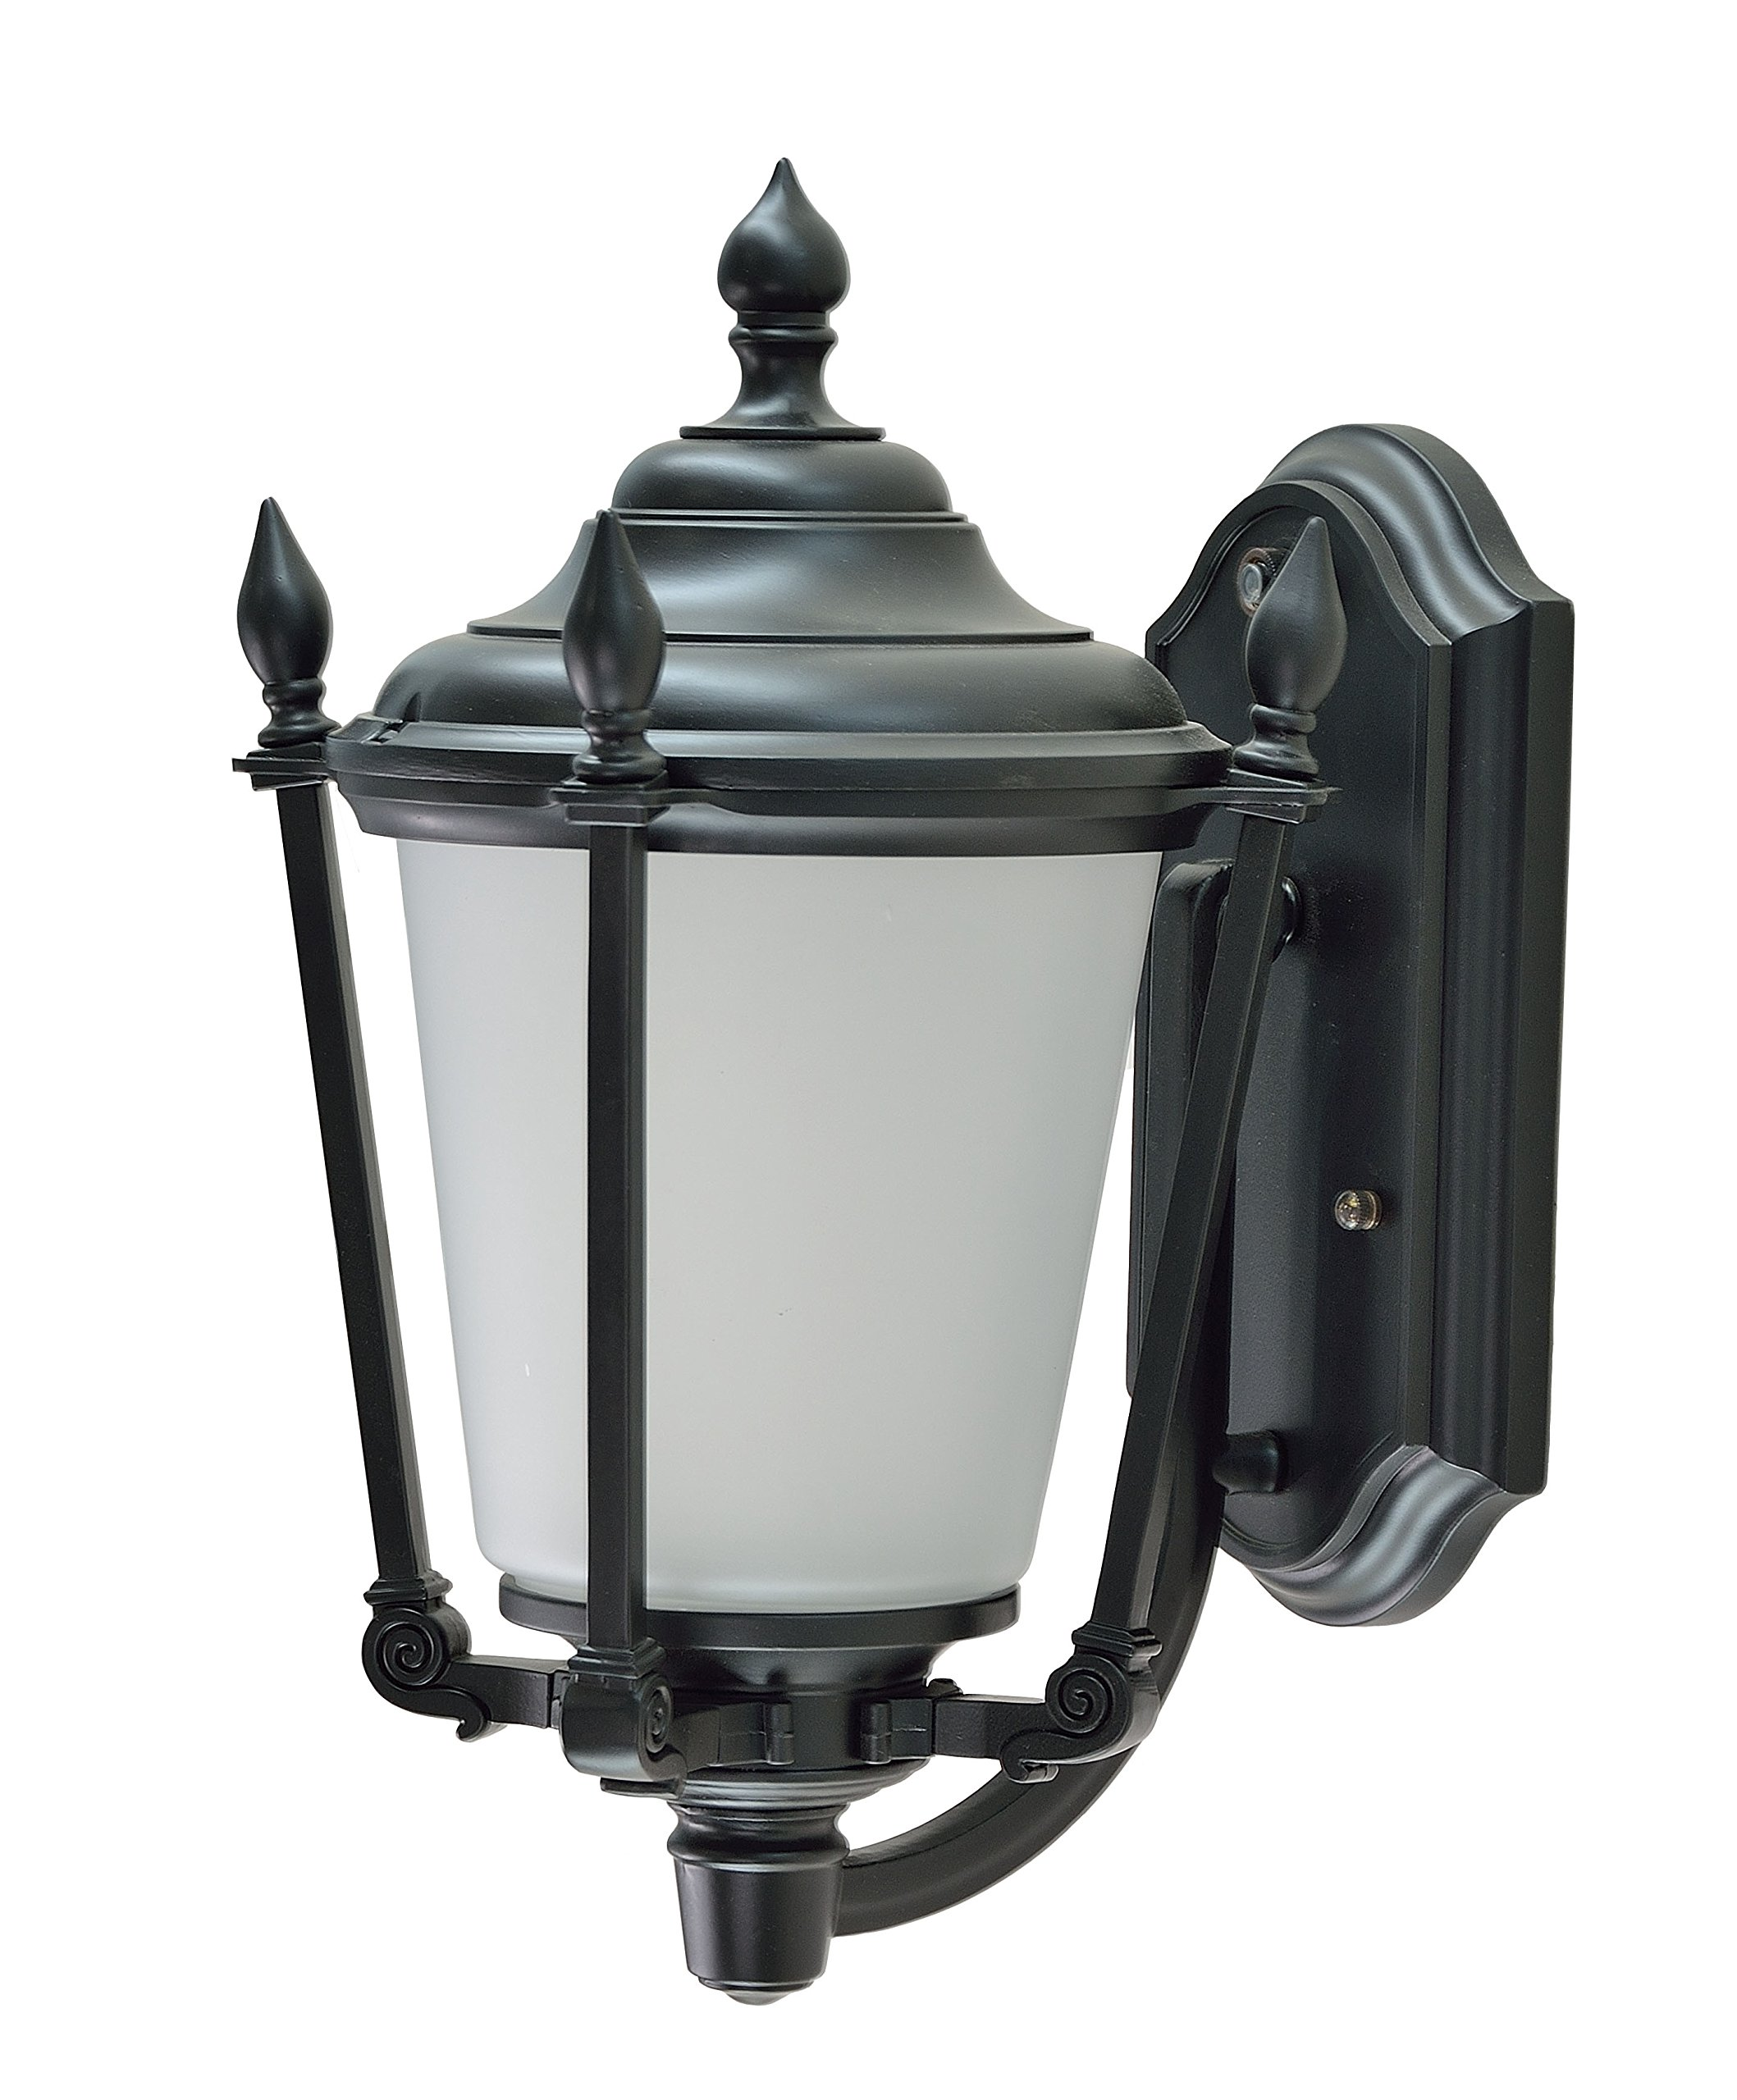 Aspen Creative 60009 1 Light Large Outdoor Wall Light Fixture with Dusk to Dawn Sensor, Transitional Design in Black, 19'' High